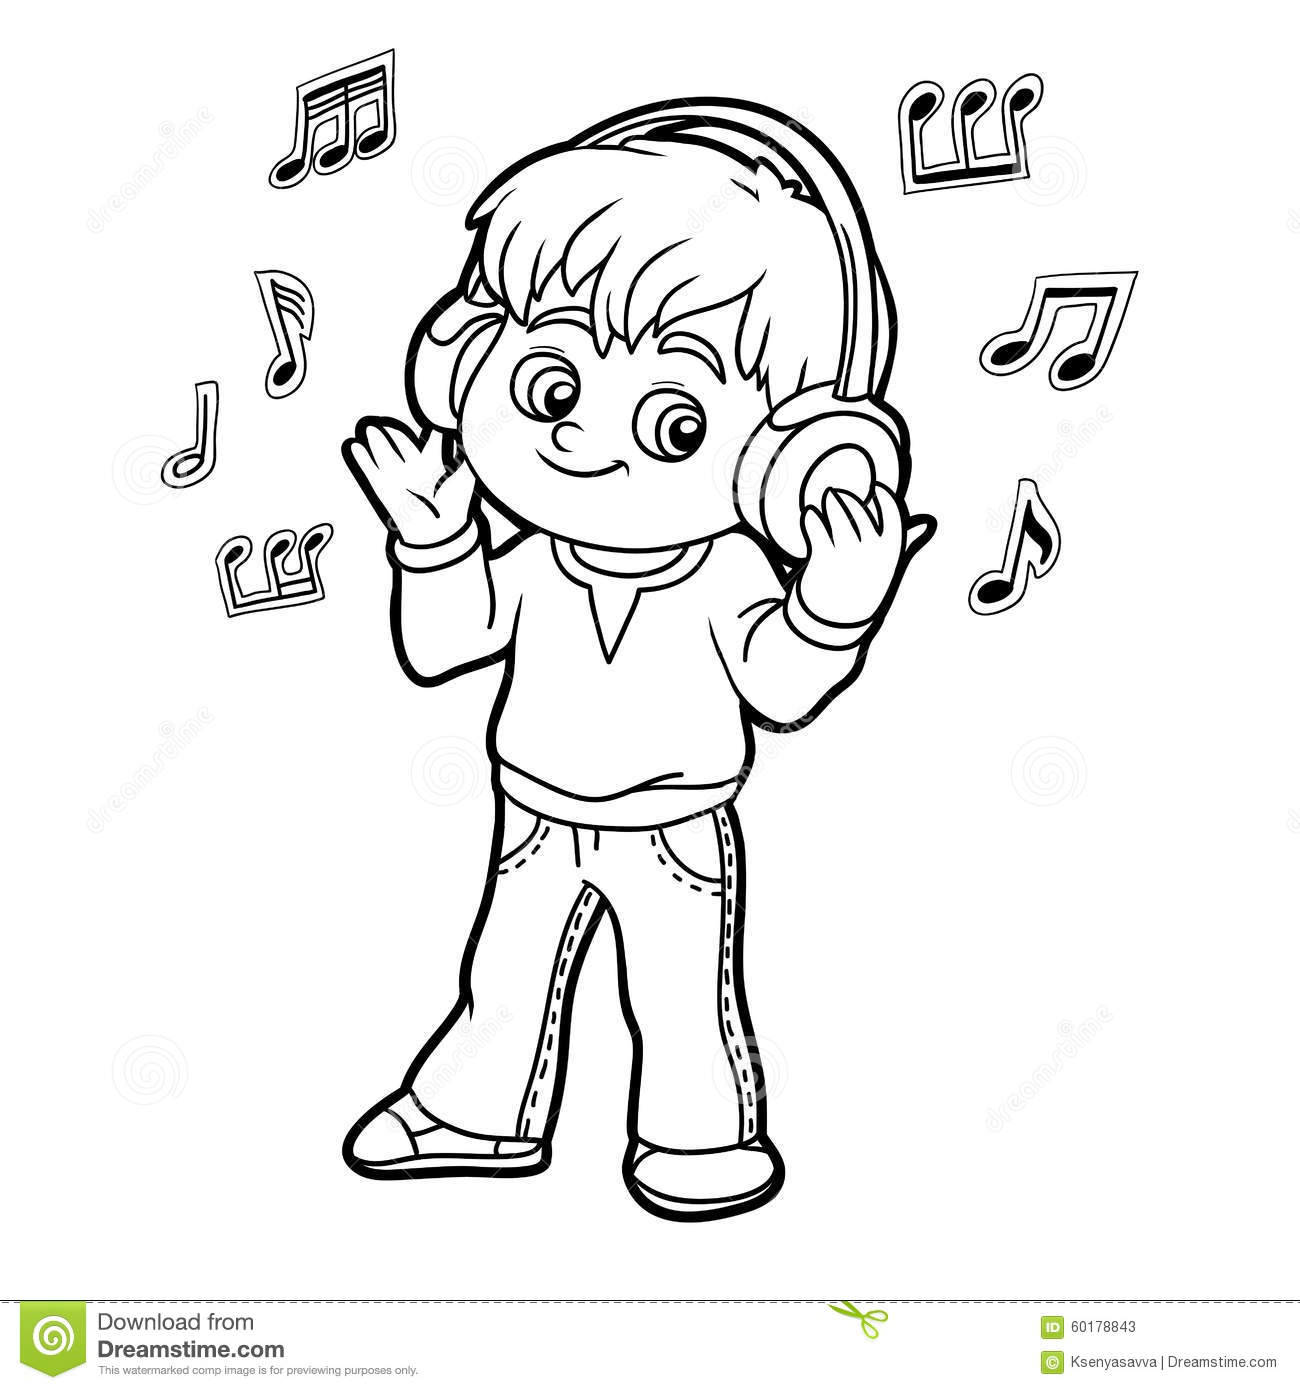 Coloring Book Little Boy Listening To Music On Headphones